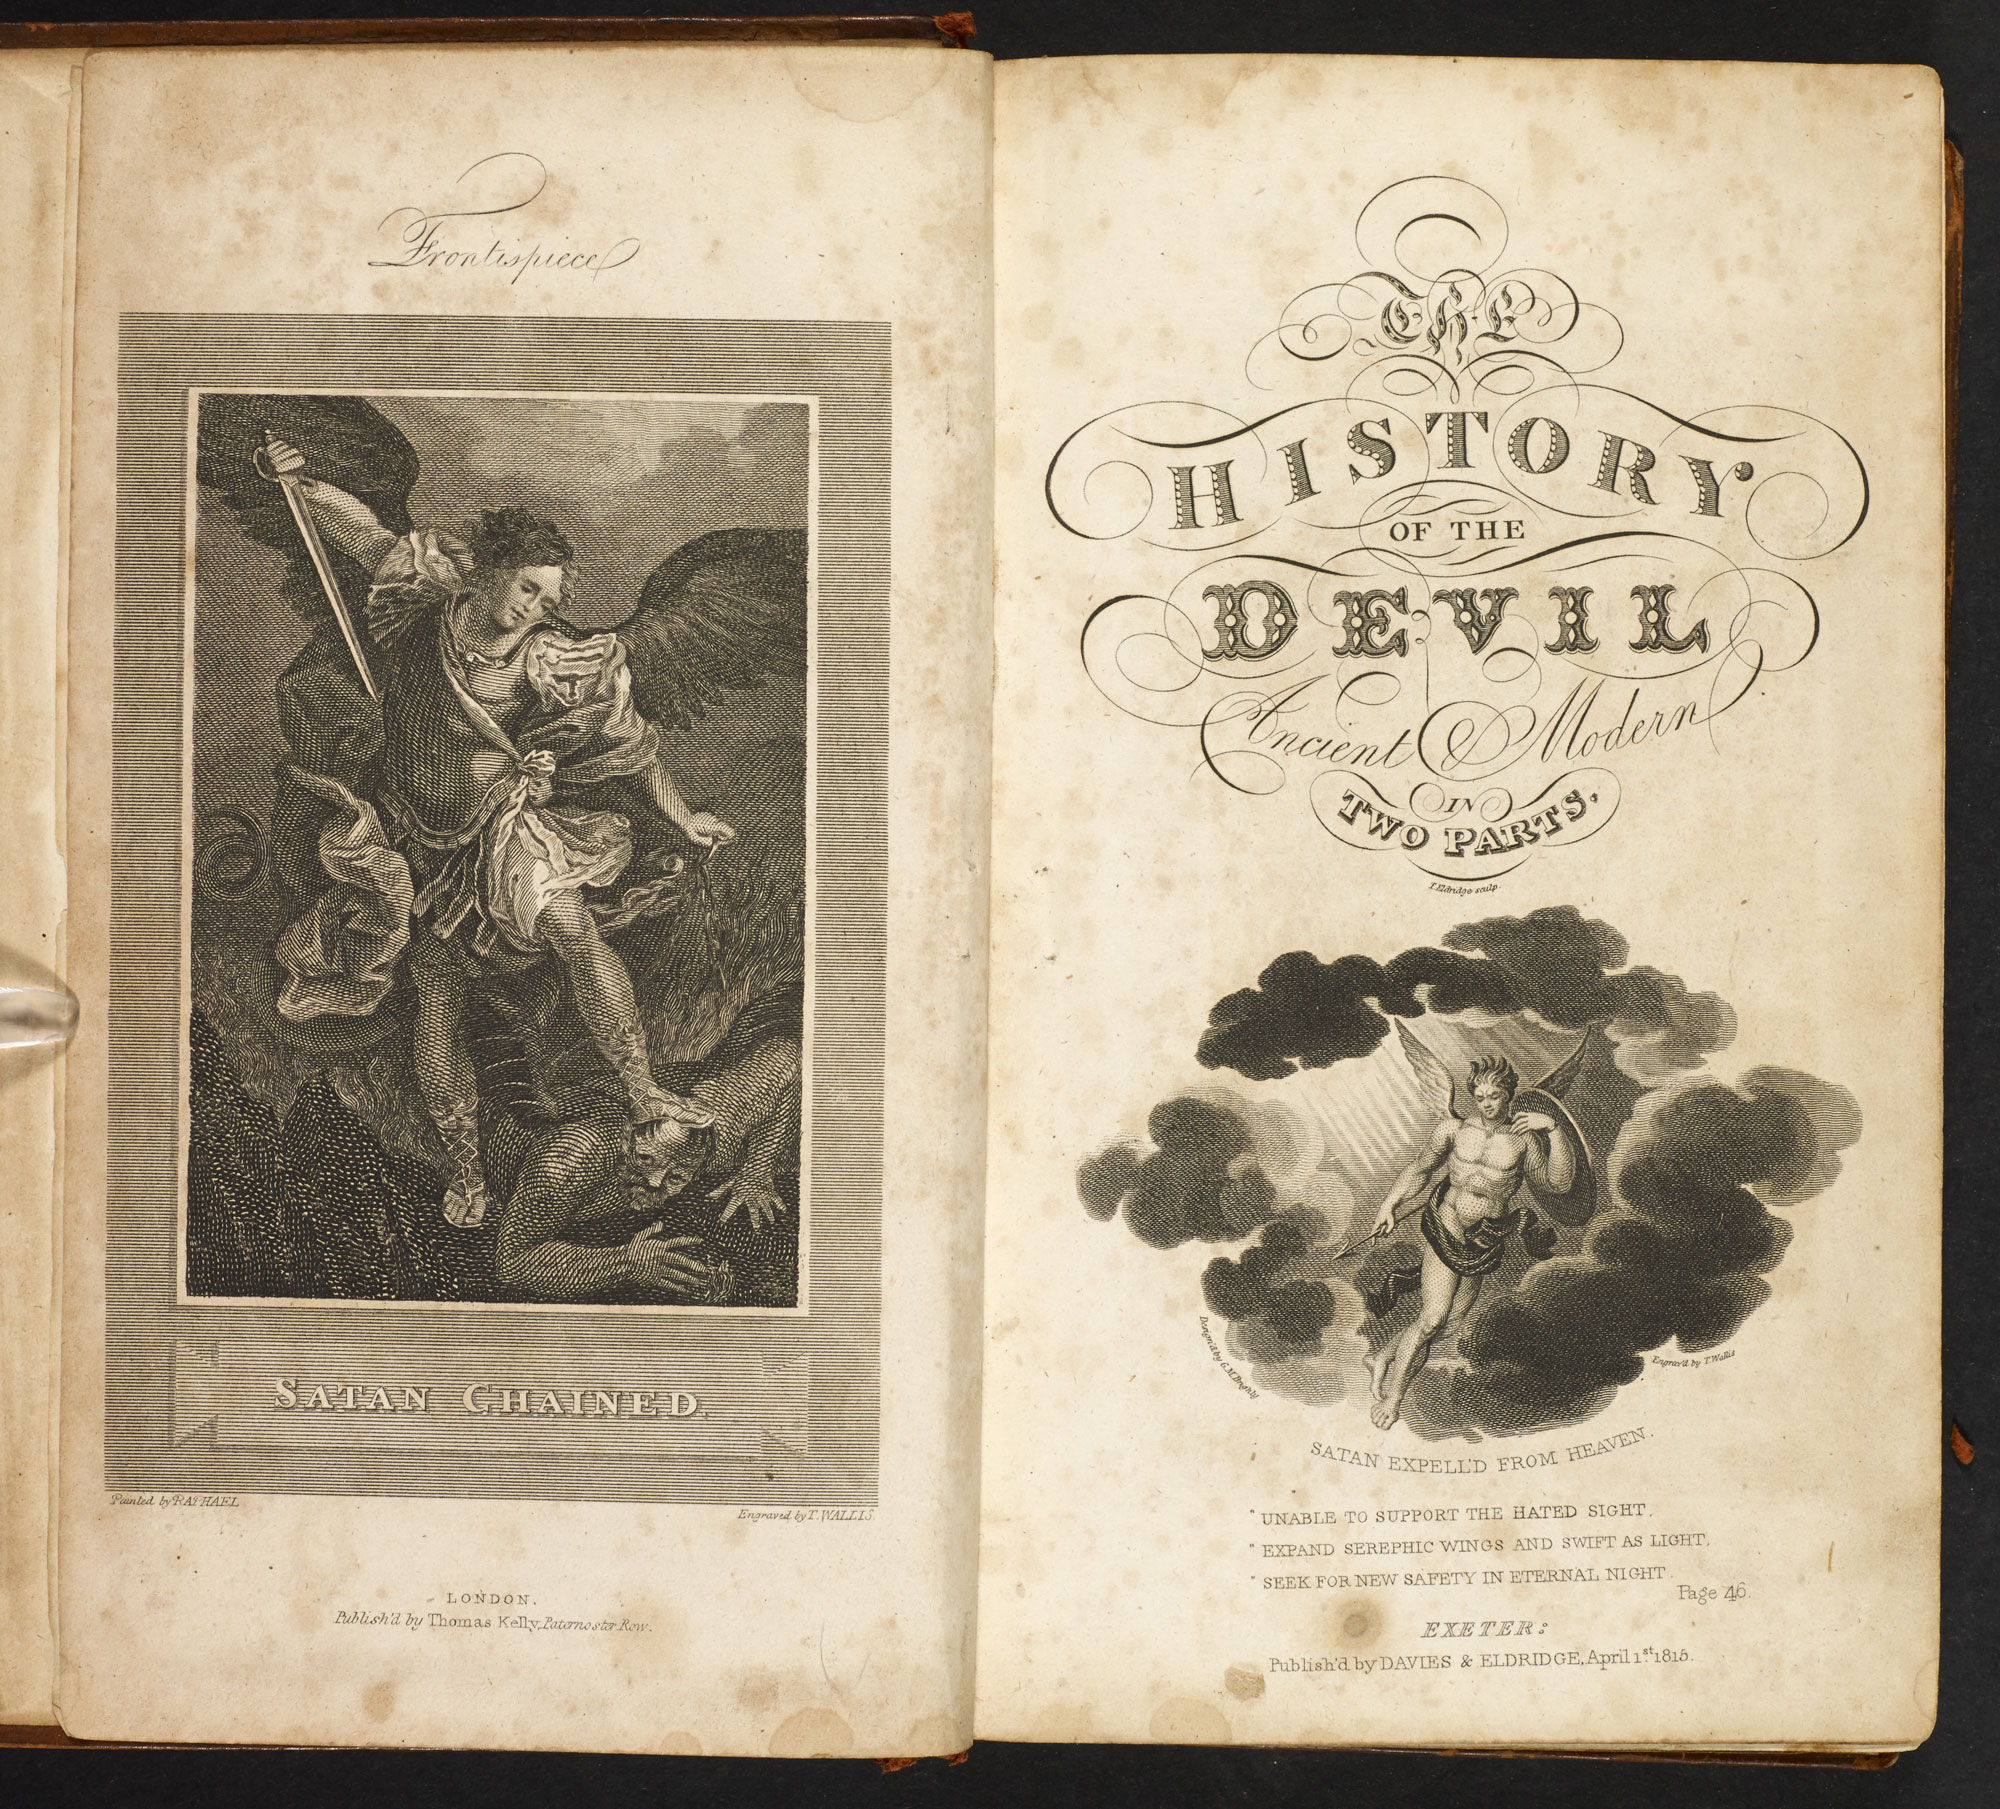 The Political History of the Devil by Daniel Defoe [page: additional frontispiece and title page]